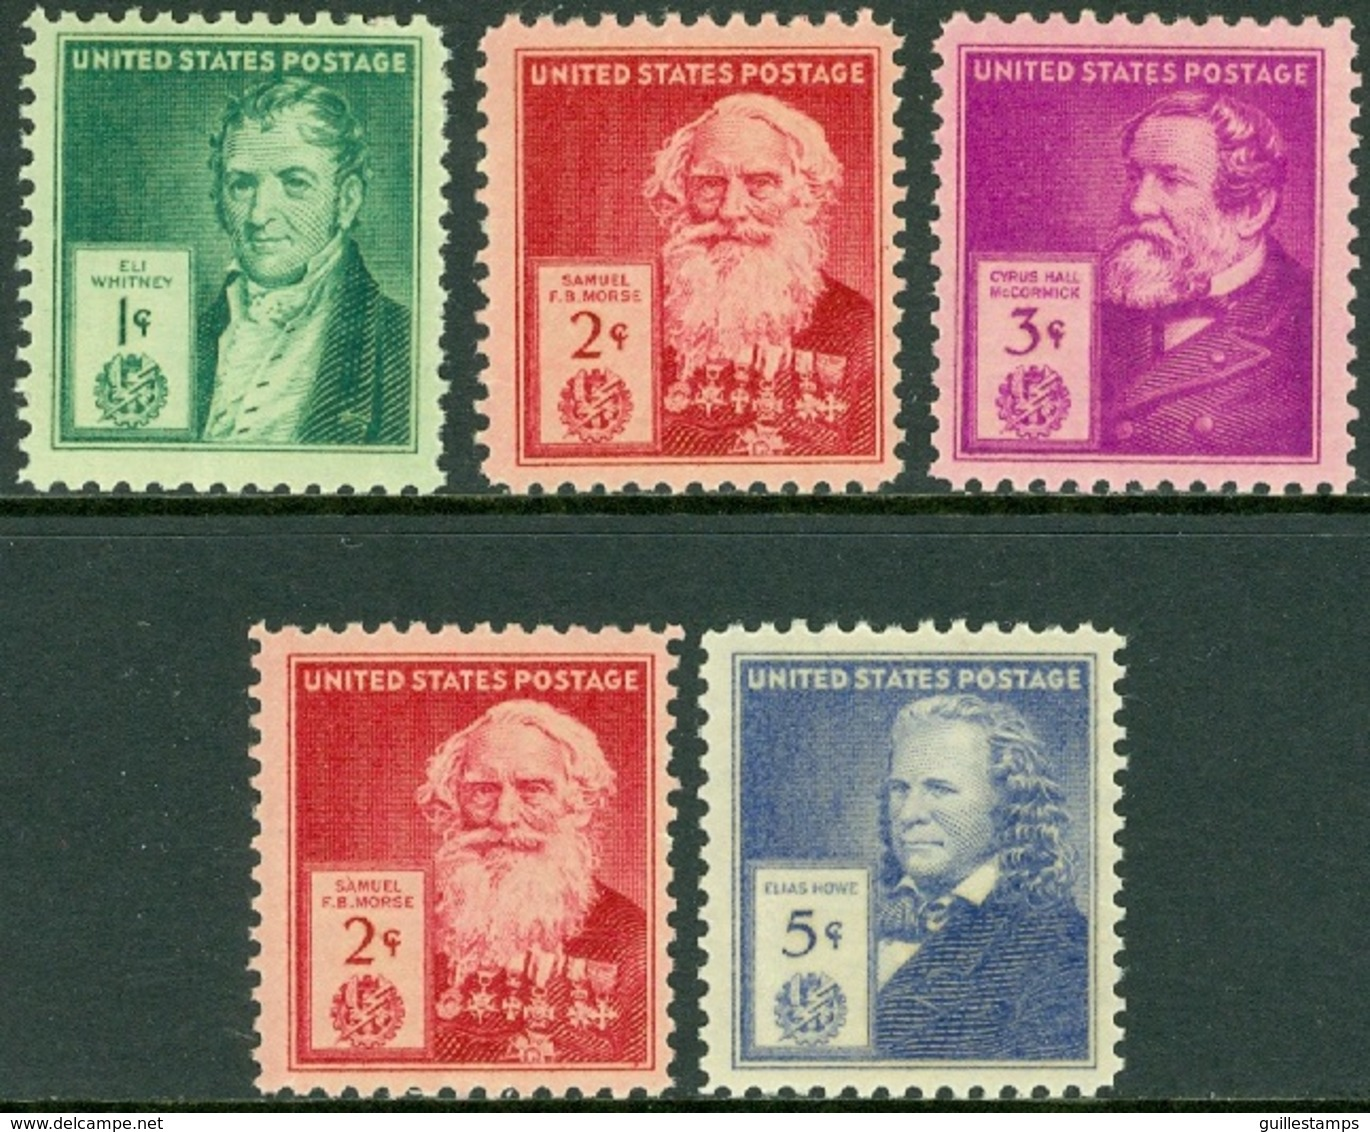 UNITED STATES OF AMERICA 1940 FAMOUS AMERICANS, INVENTORS** (MNH) - Unused Stamps